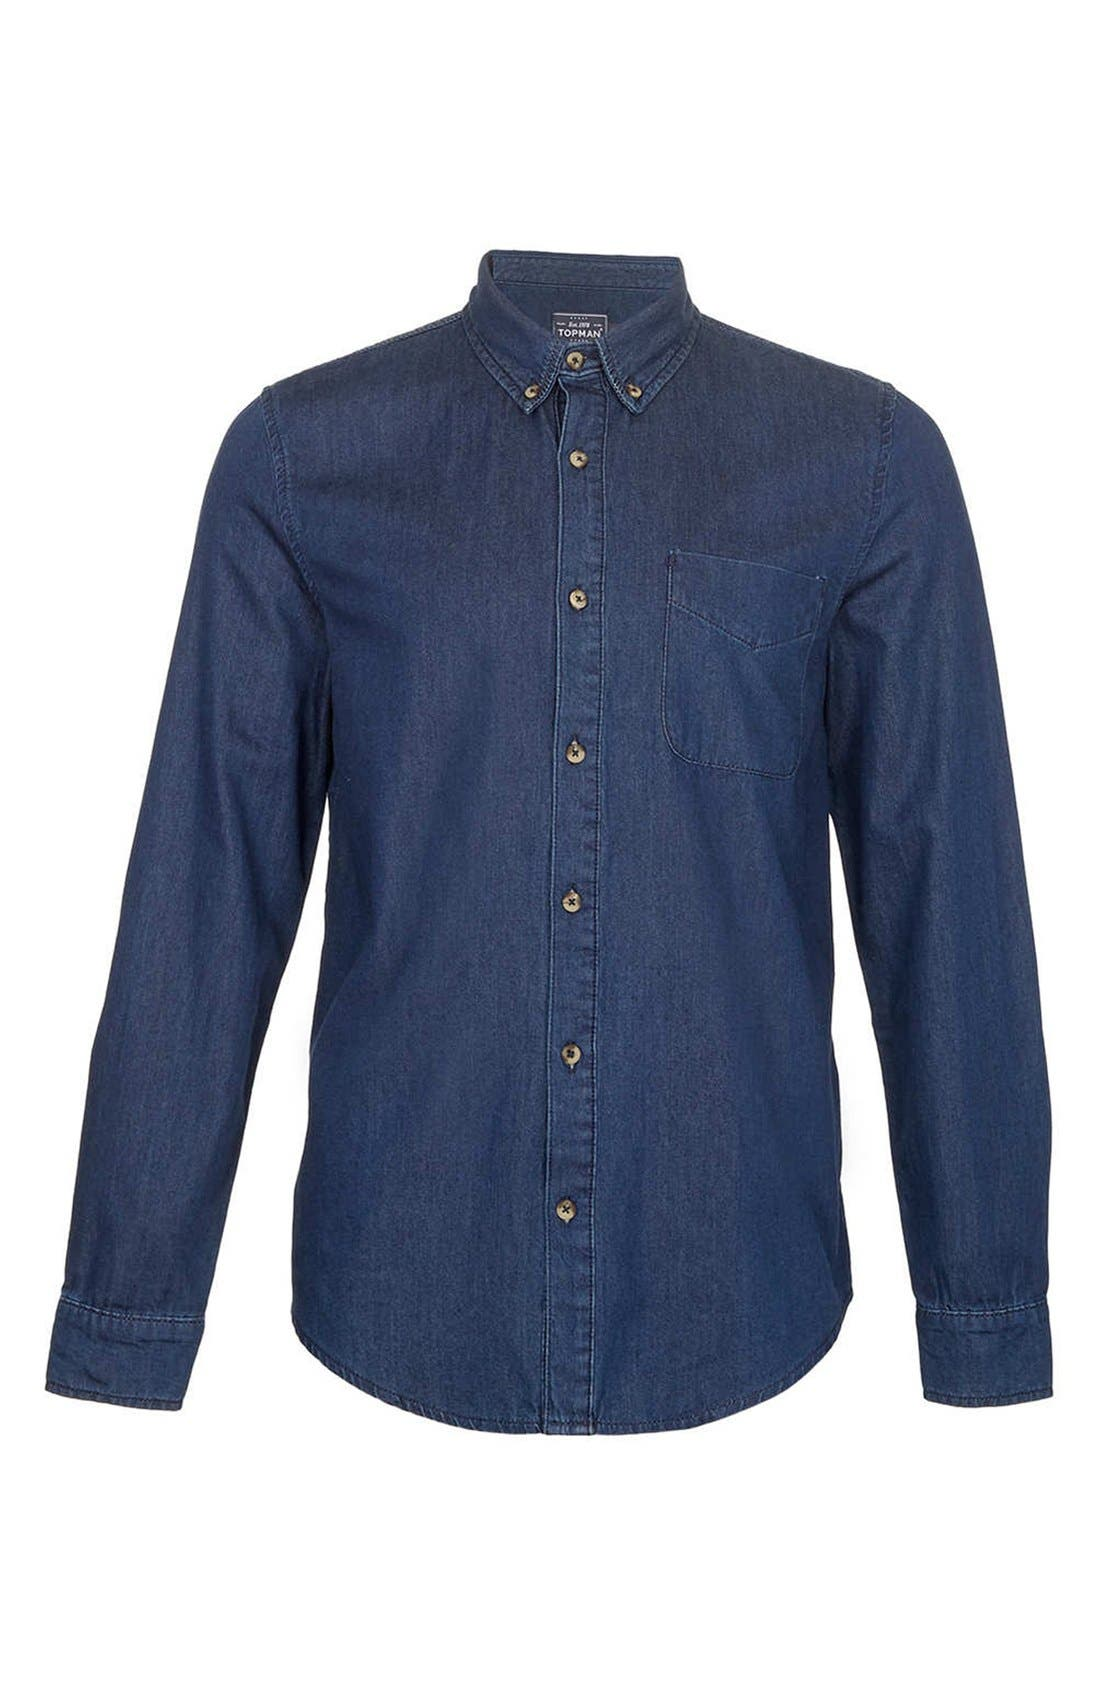 Main Image - Topman Denim Shirt